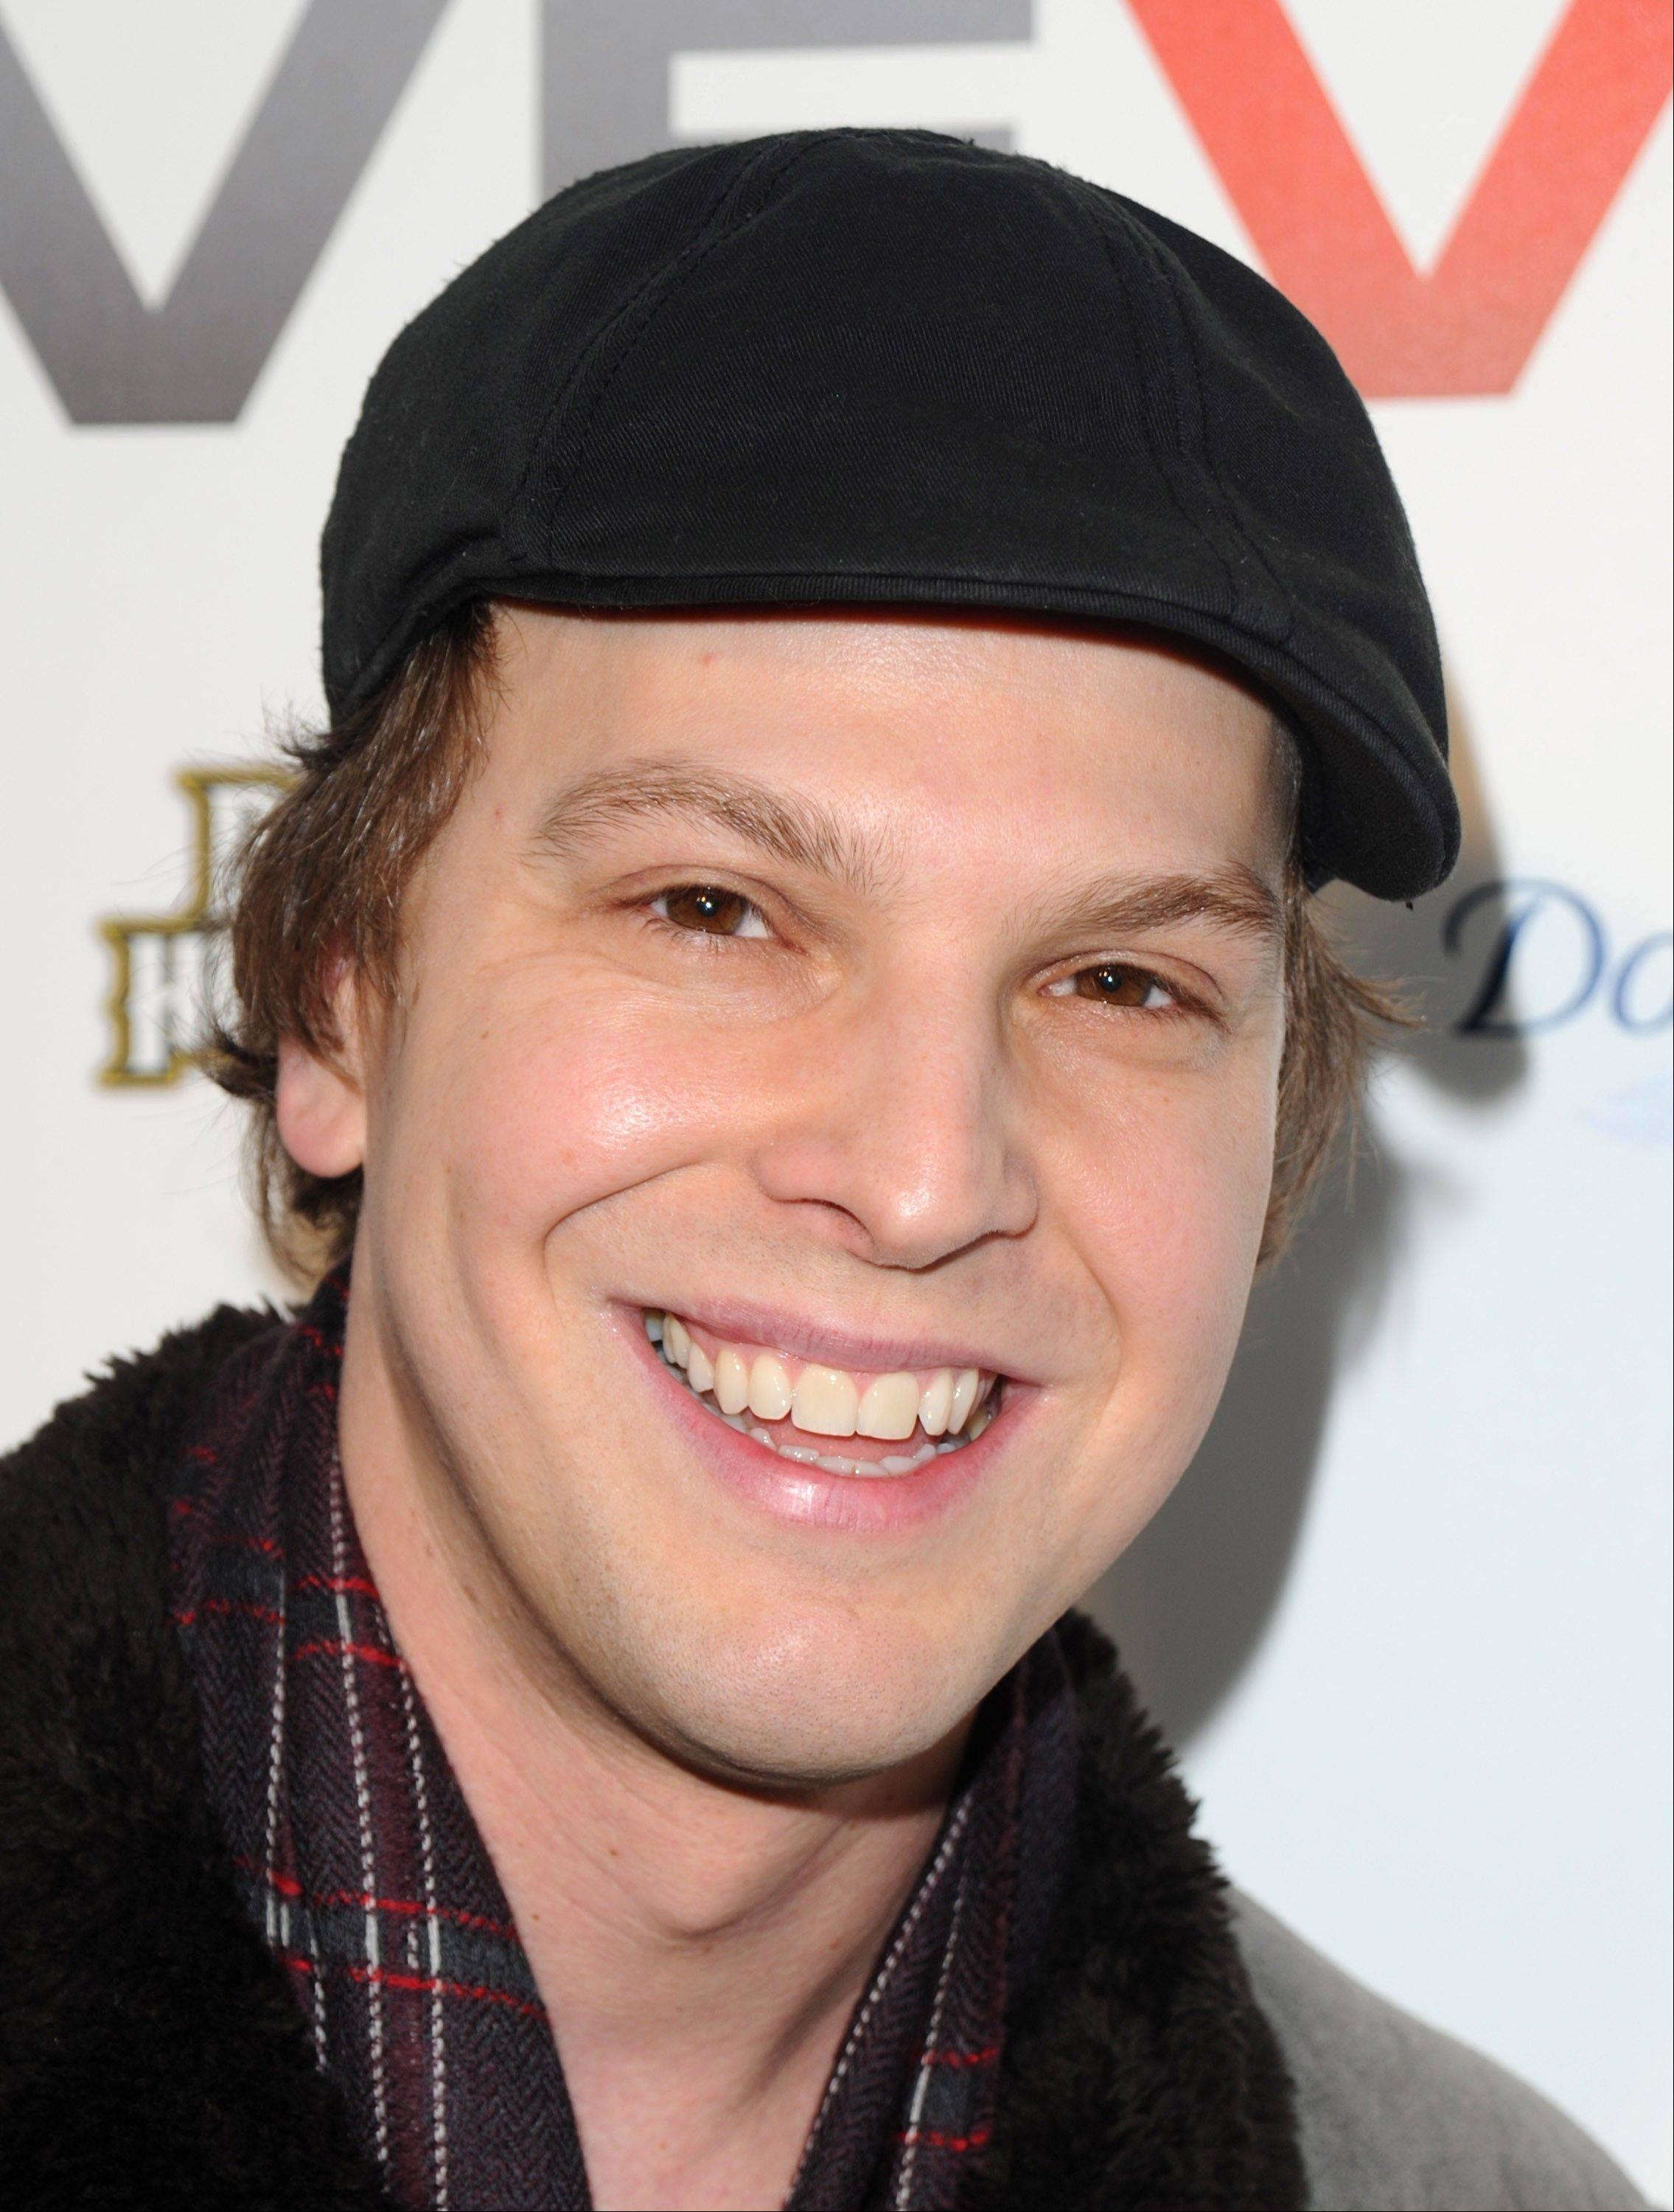 An attack Sunday left Gavin DeGraw with a broken nose, a concussion and other injuries.